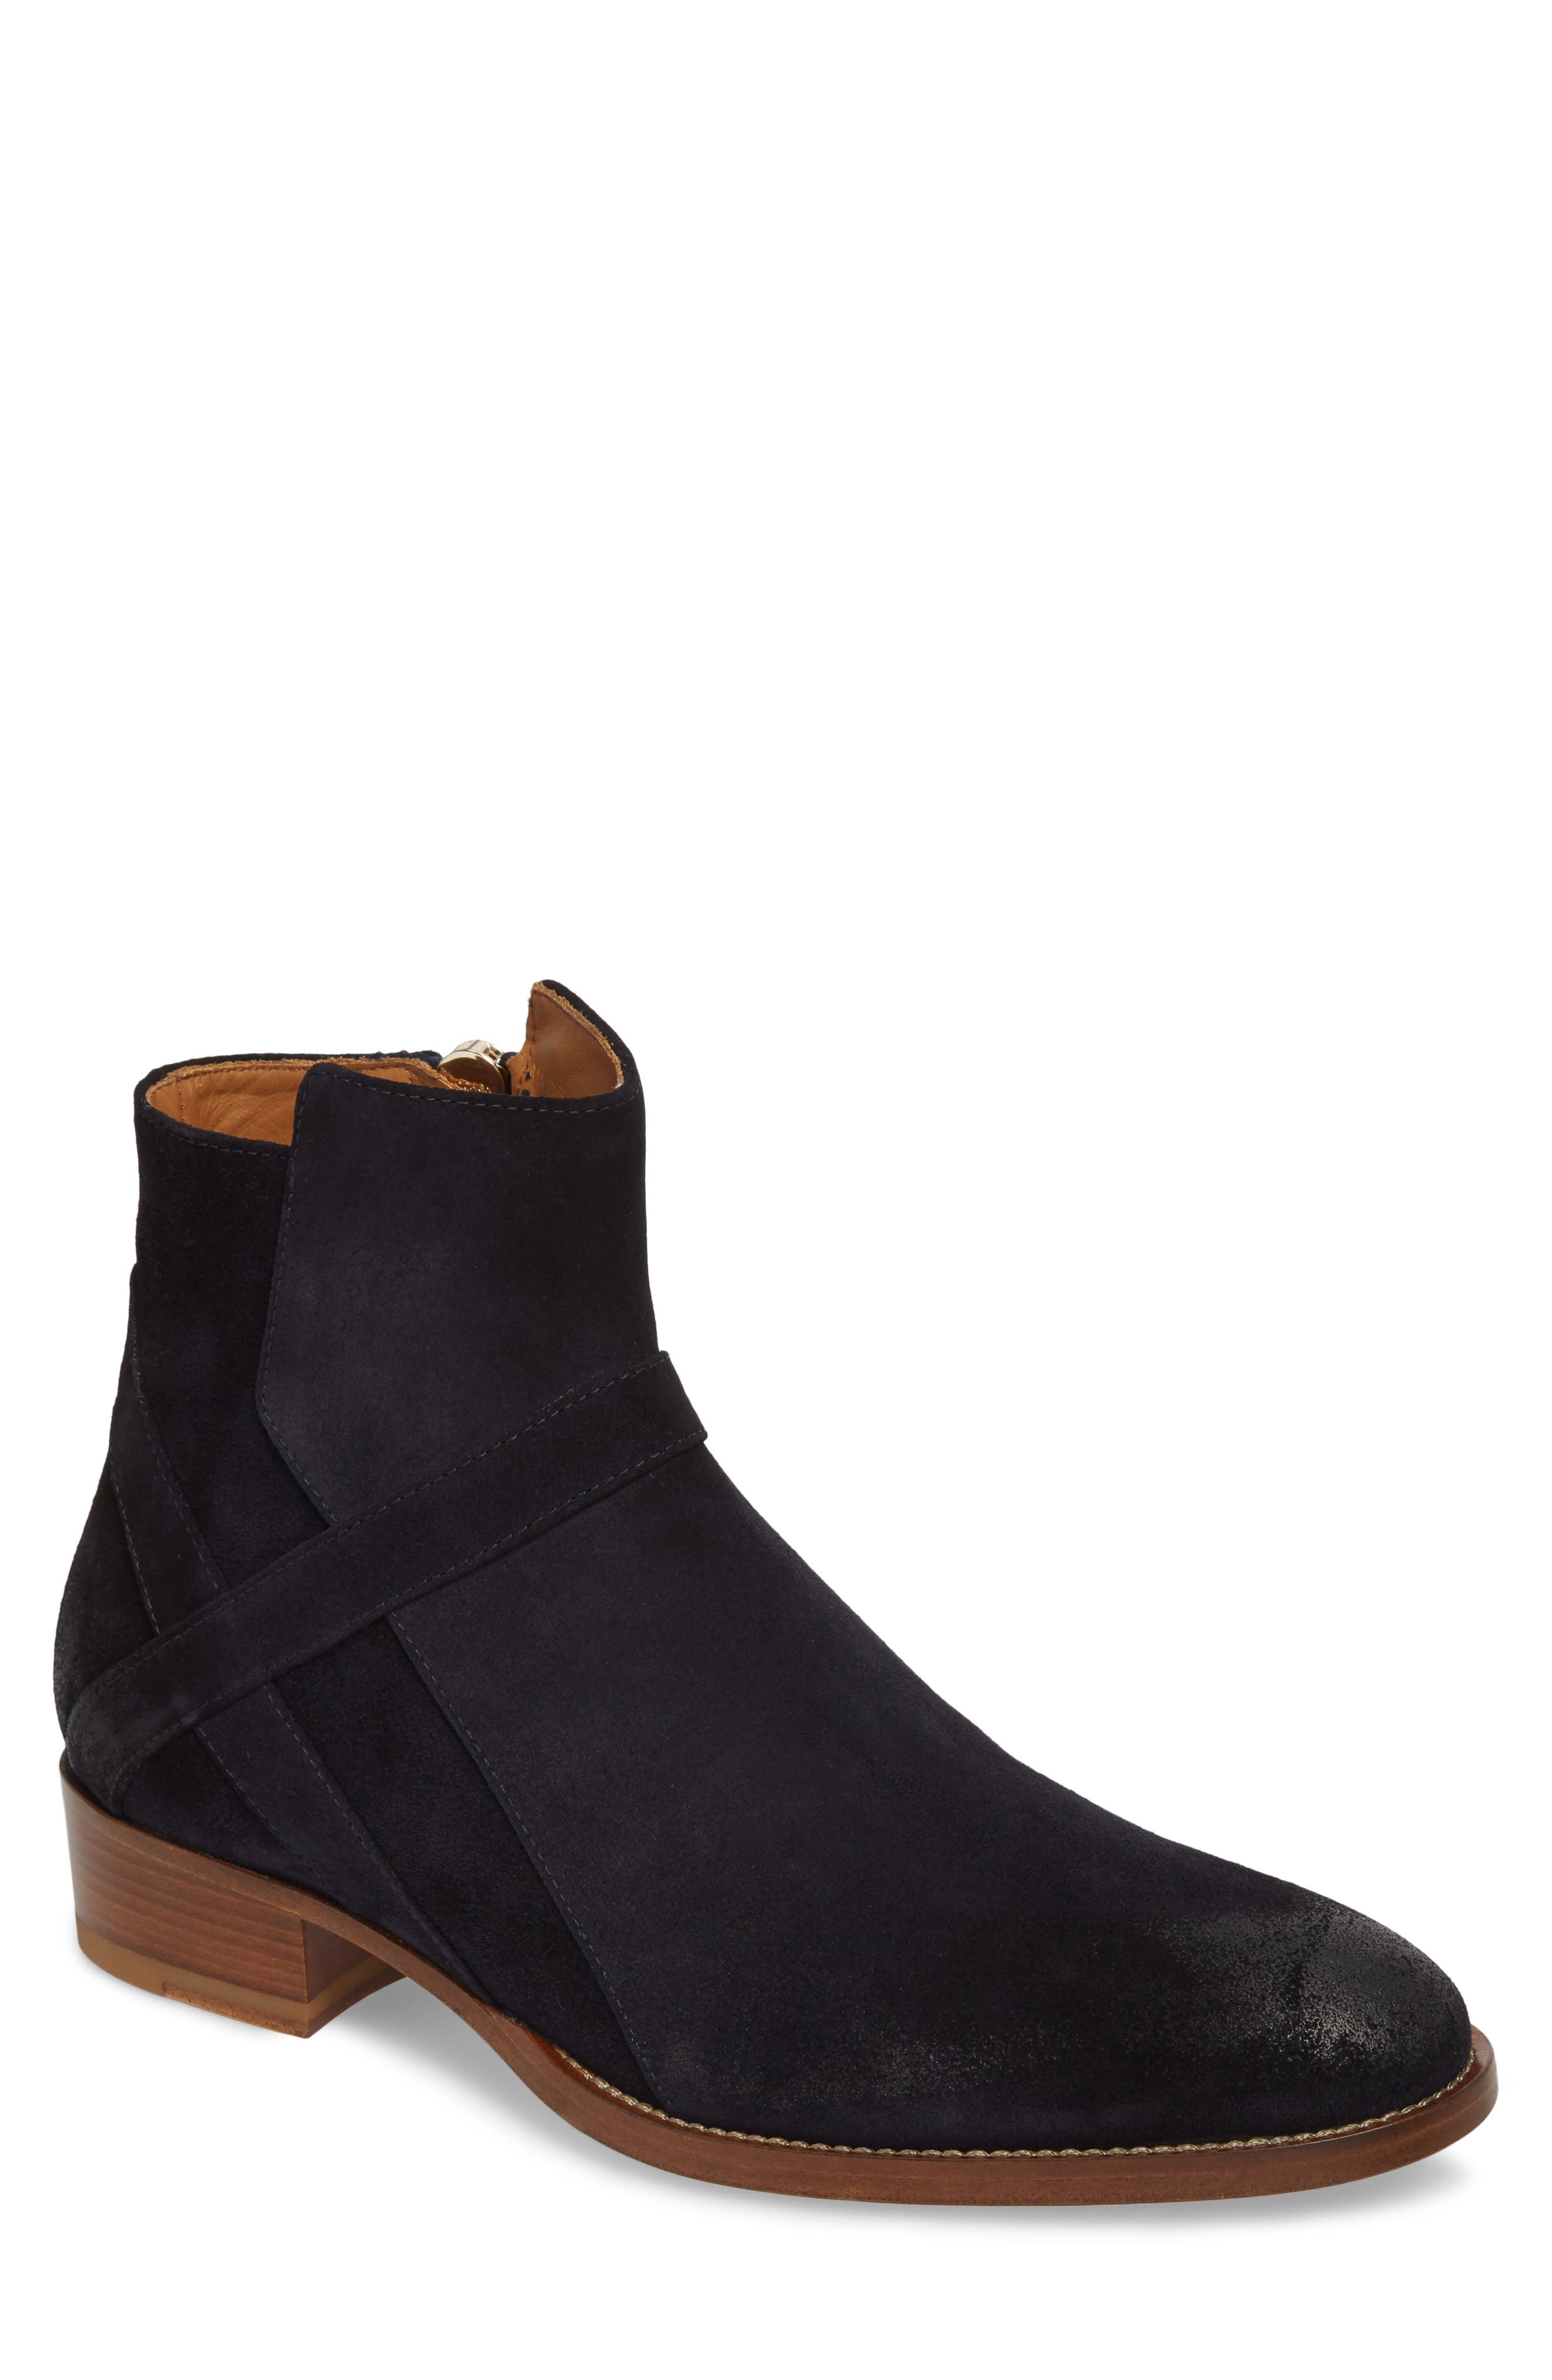 Bowie Zip Boot,                             Main thumbnail 1, color,                             NAVY SUEDE